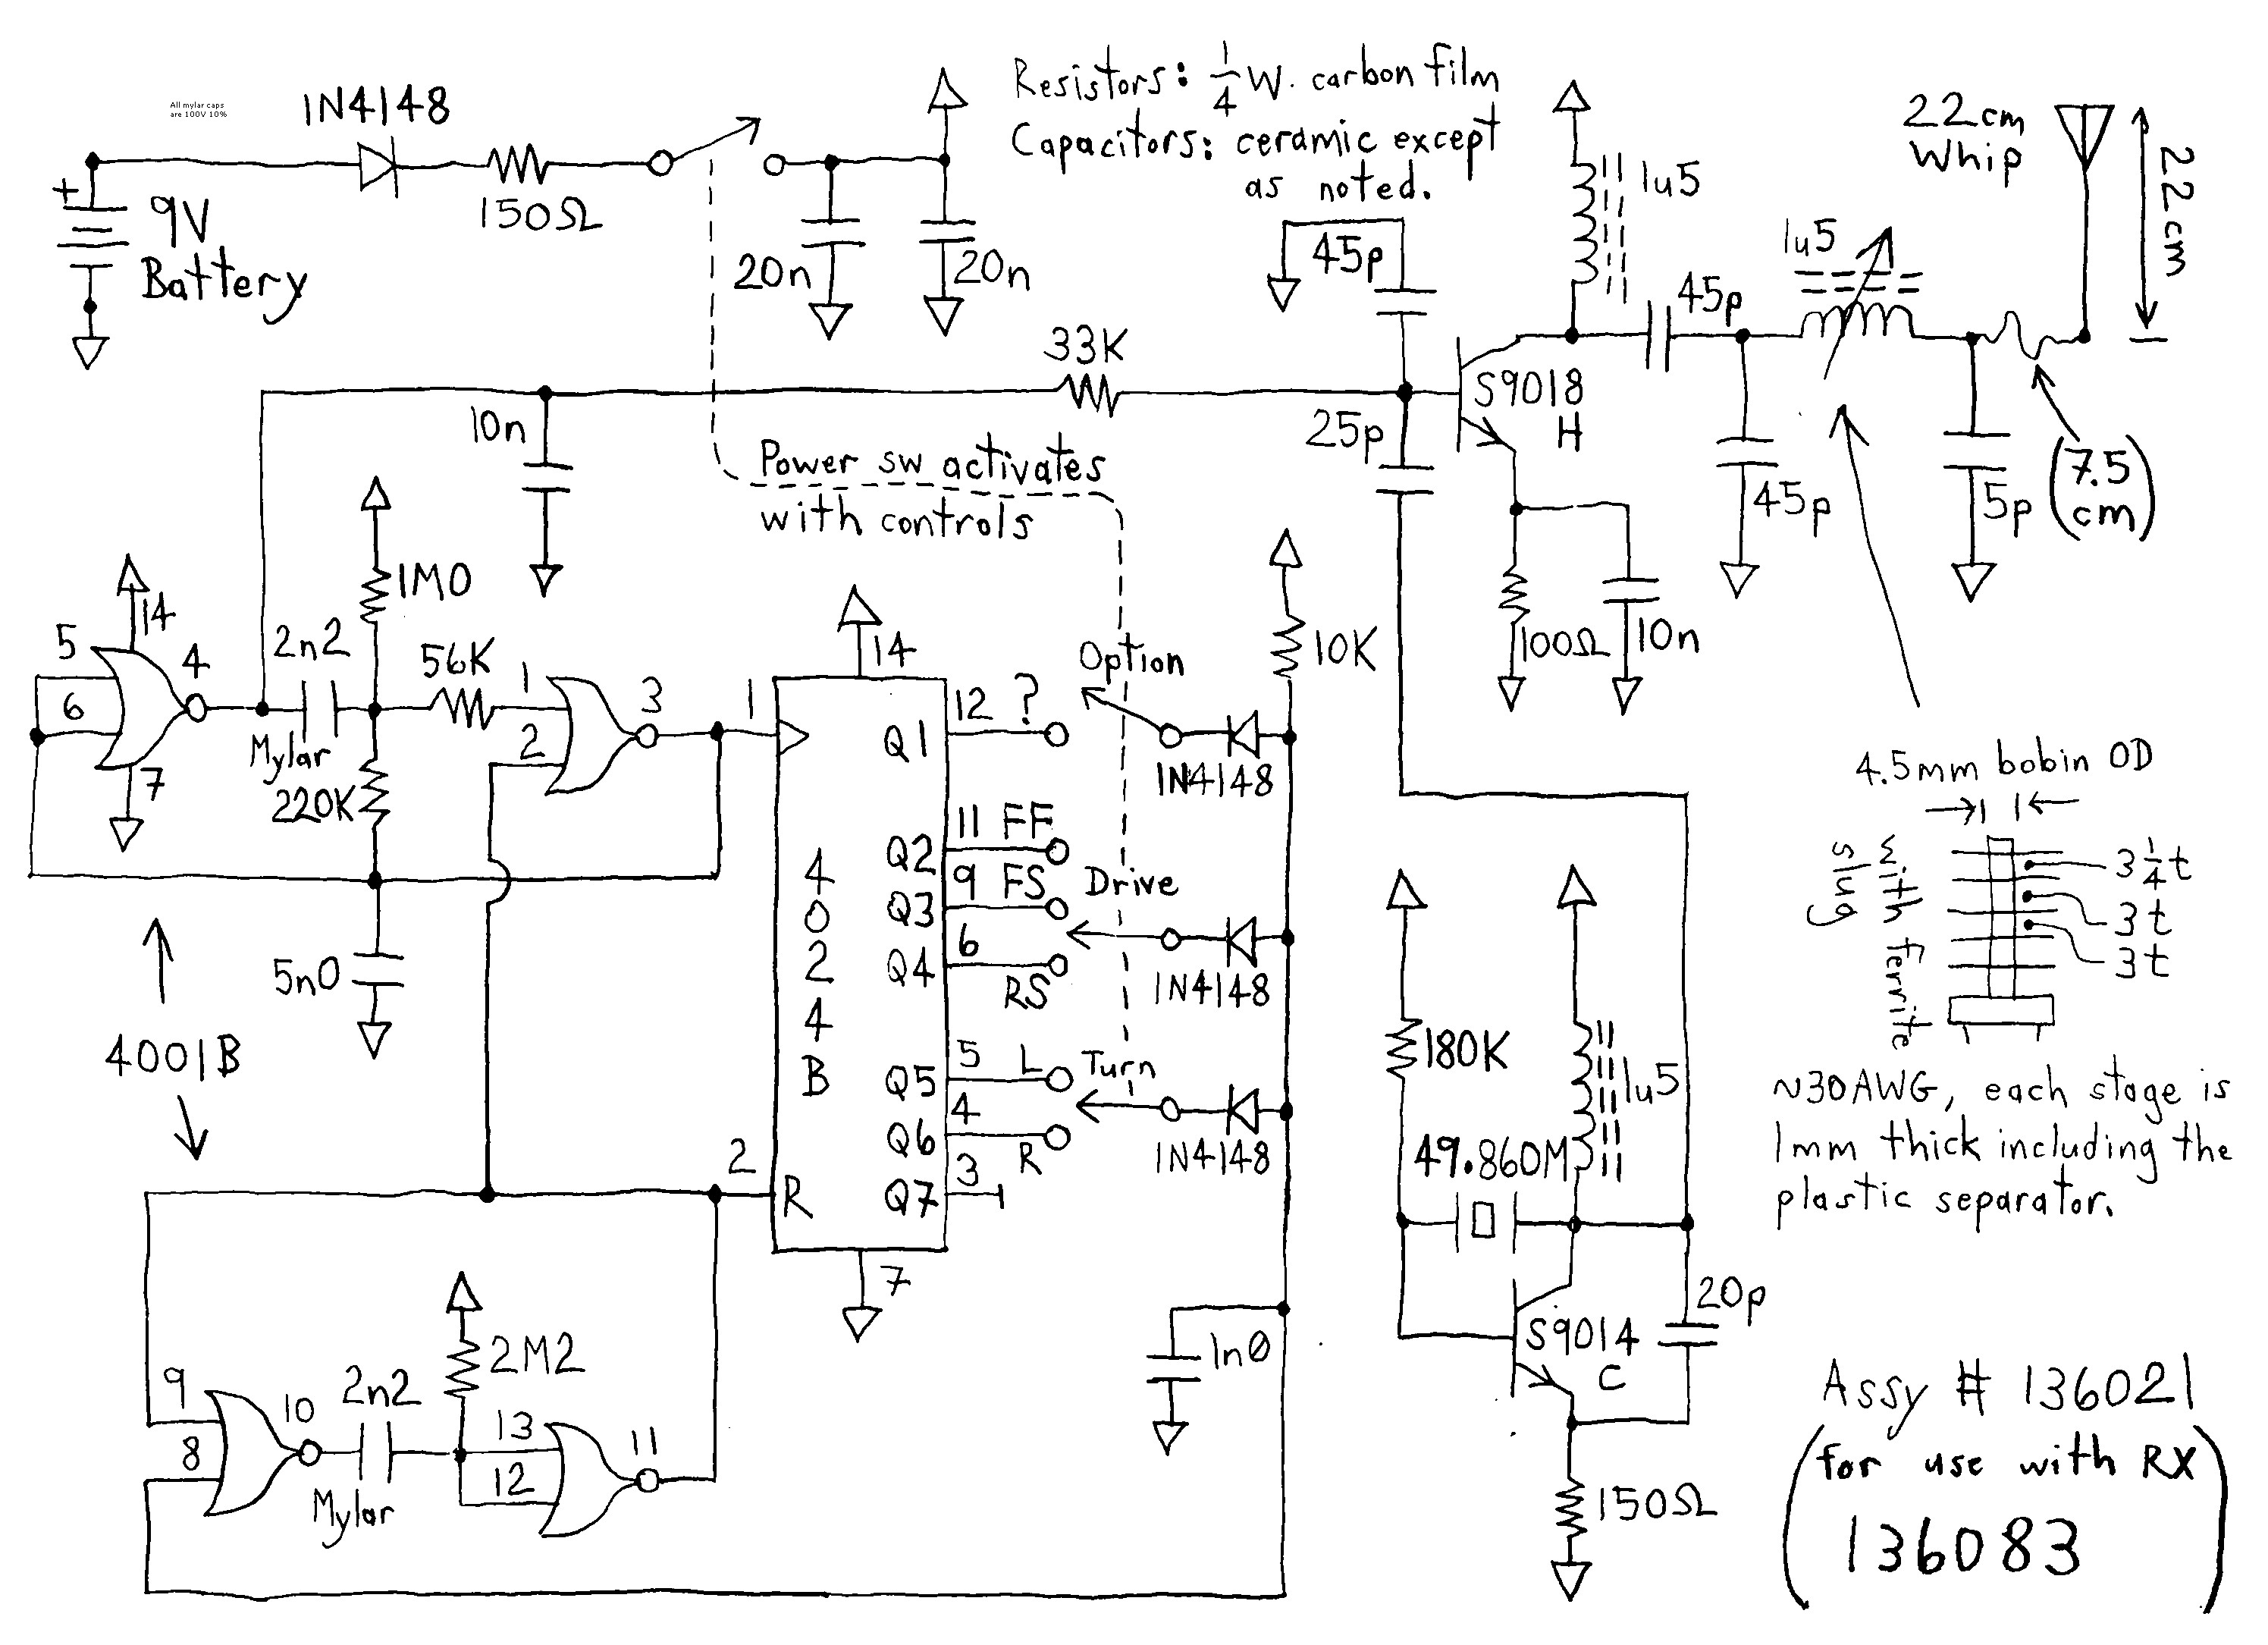 fbp 1 40x wiring diagram Collection-fbp 1 40x wiring diagram fbp 1 40x wiring diagram inspirational learn ap physics c circuits of fbp 1 40x wiring diagram 14-s